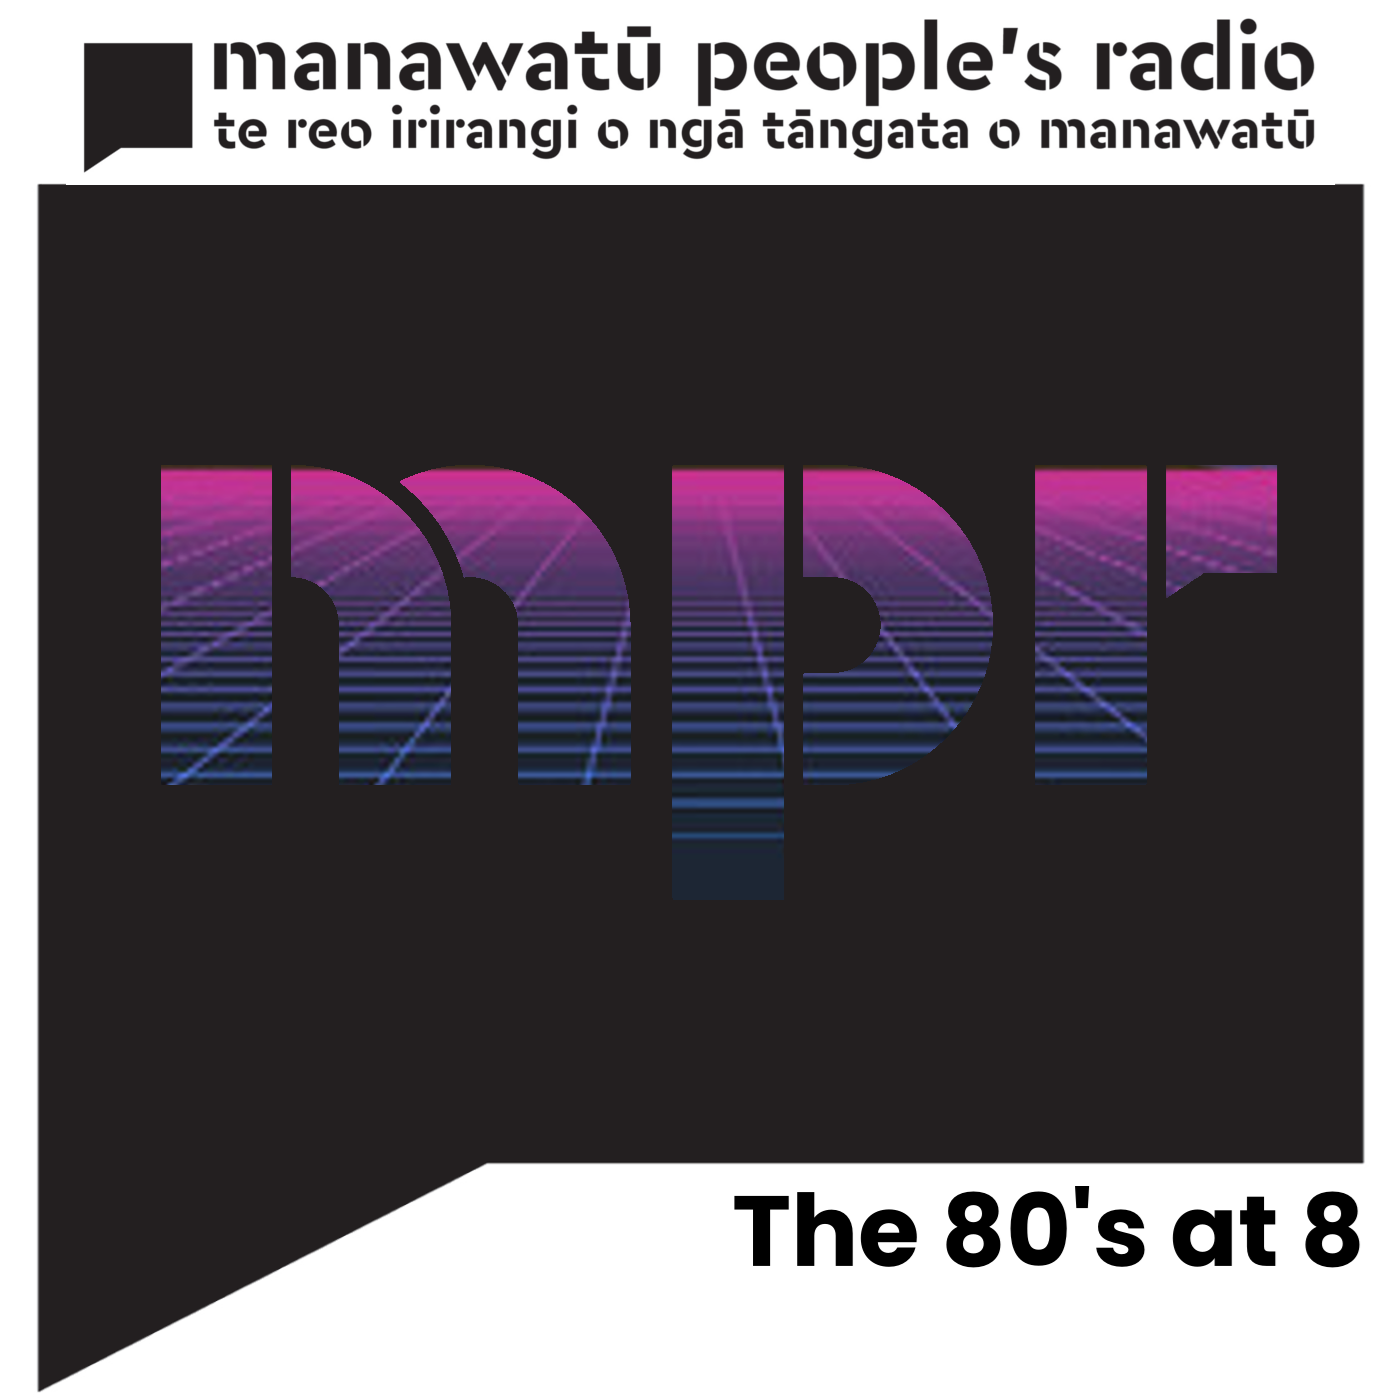 https://static.accessradio.org/StationFolder/manawatu/Images/MPR - The80sat8.png